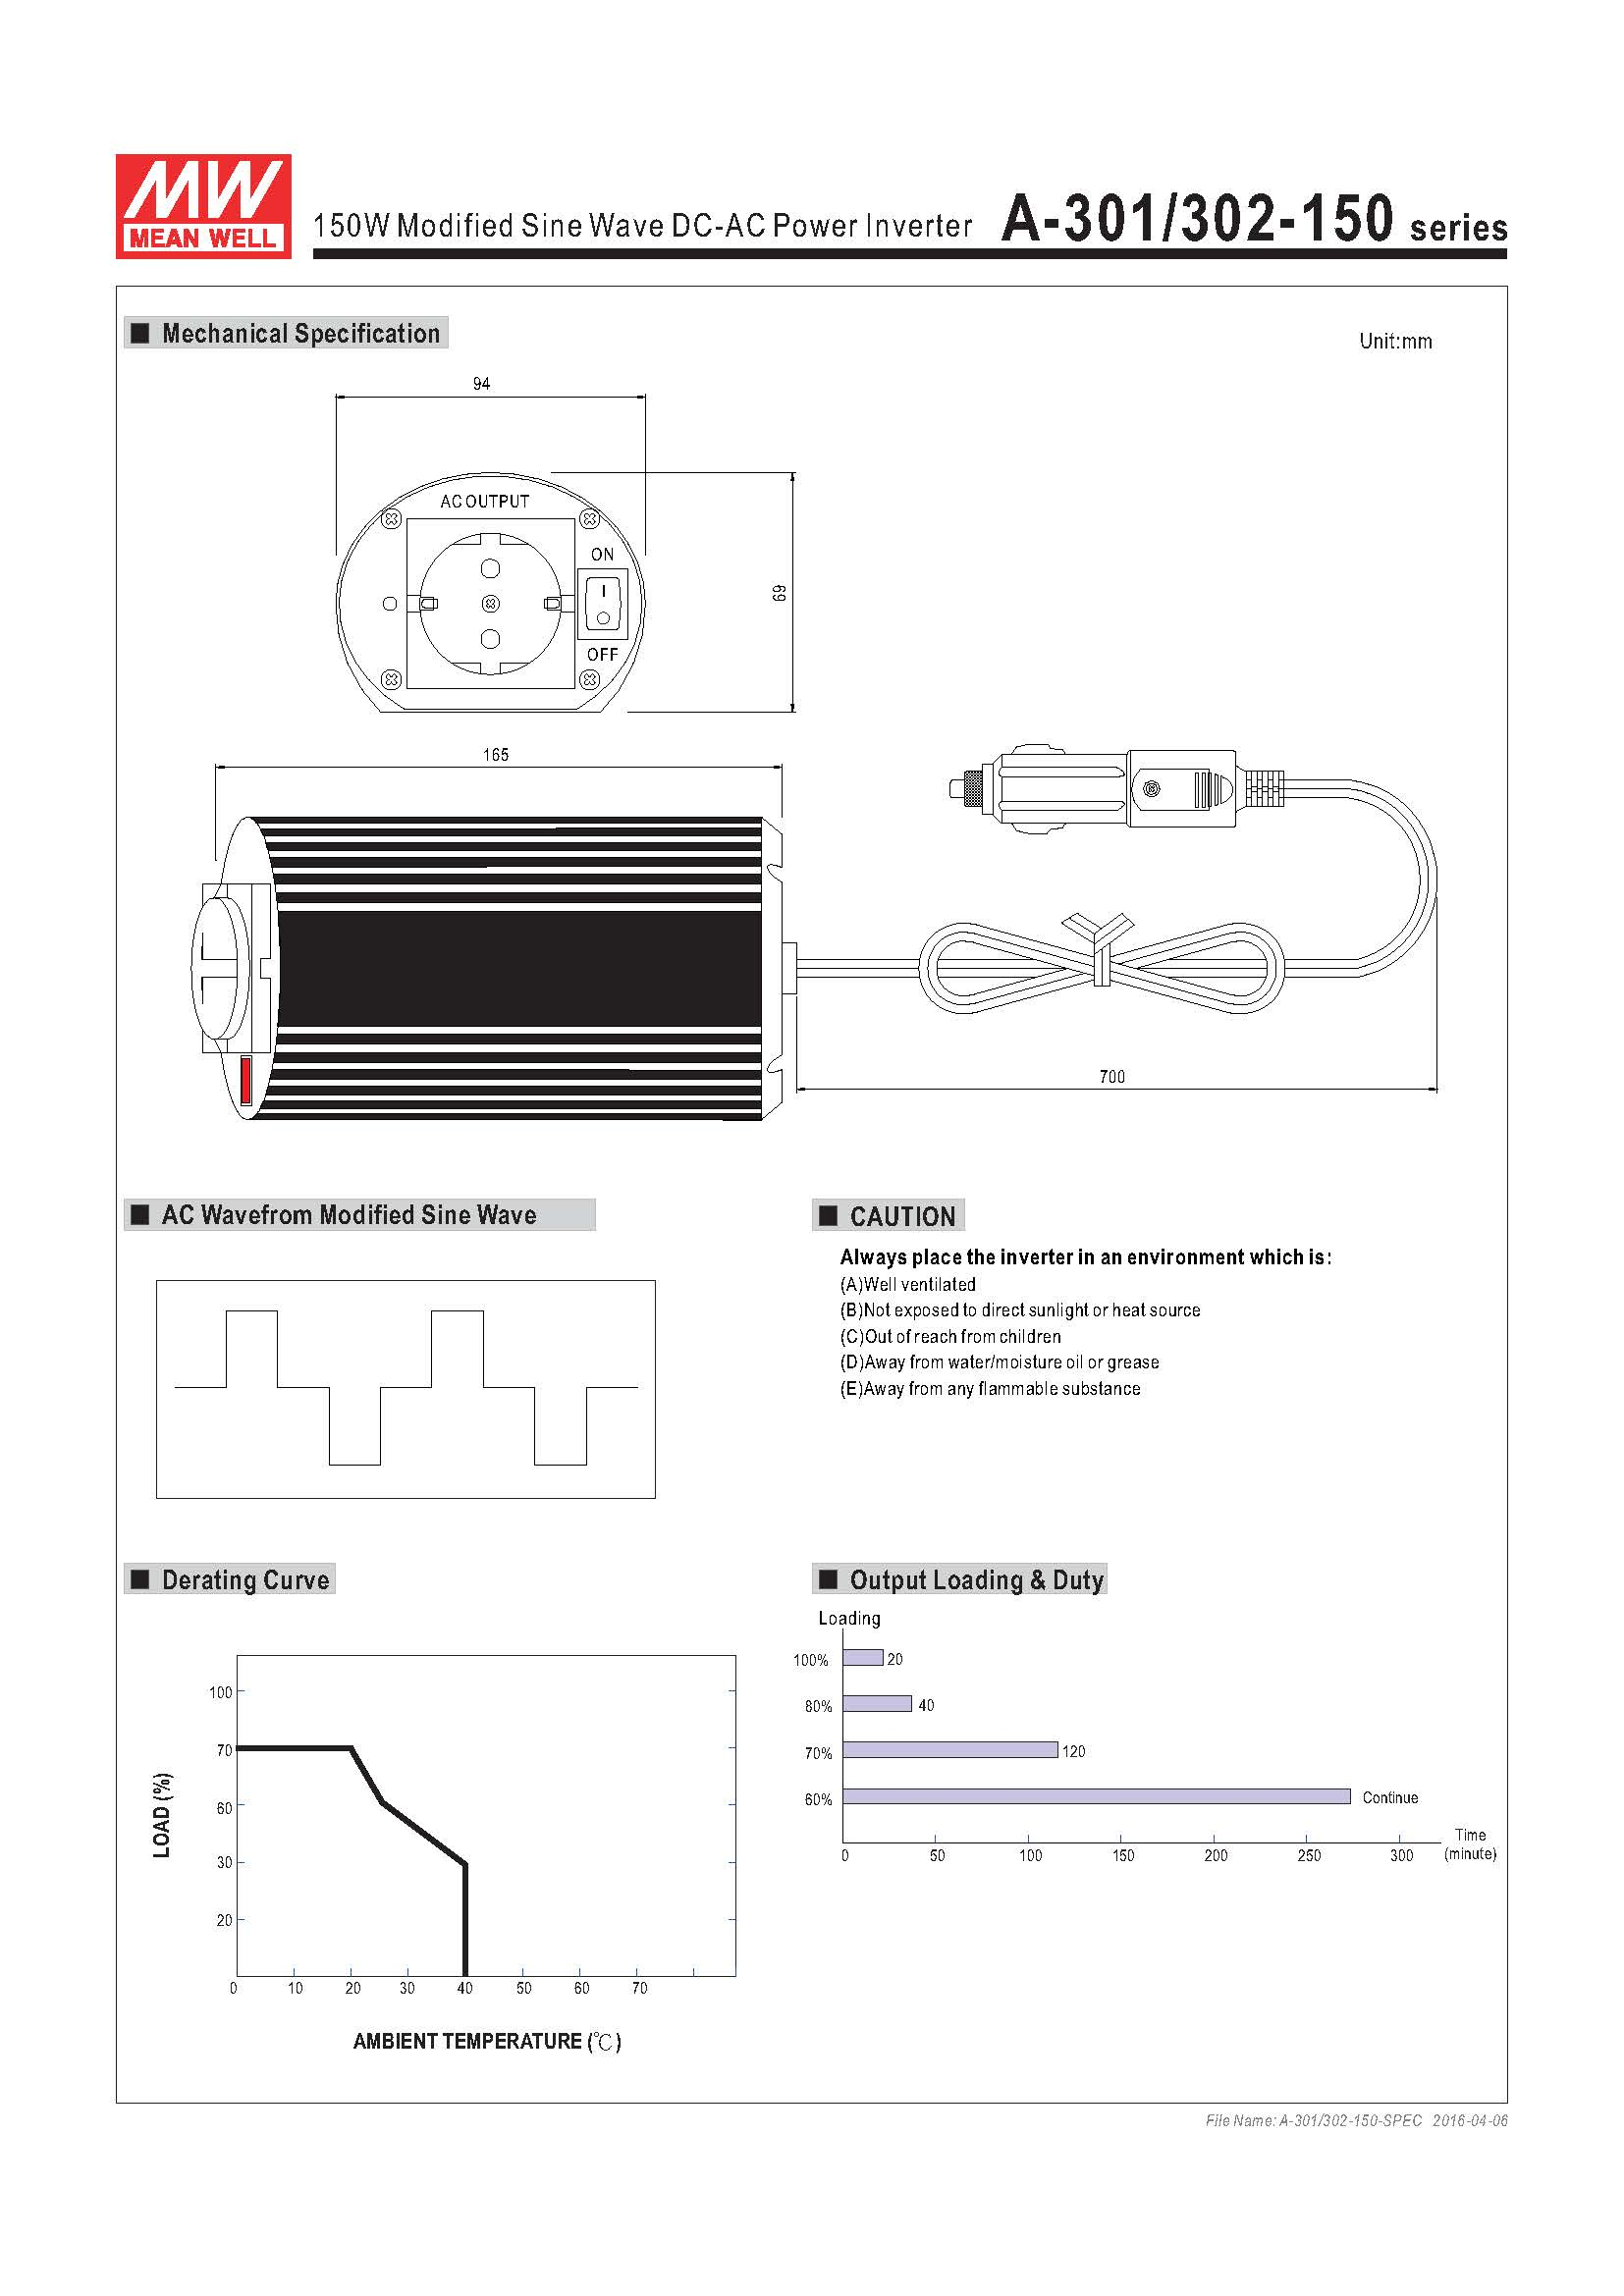 A-301302-150-SPEC - 150W Modified Sine Wave DC-AC Power Inverter Diagram Specification Graphic